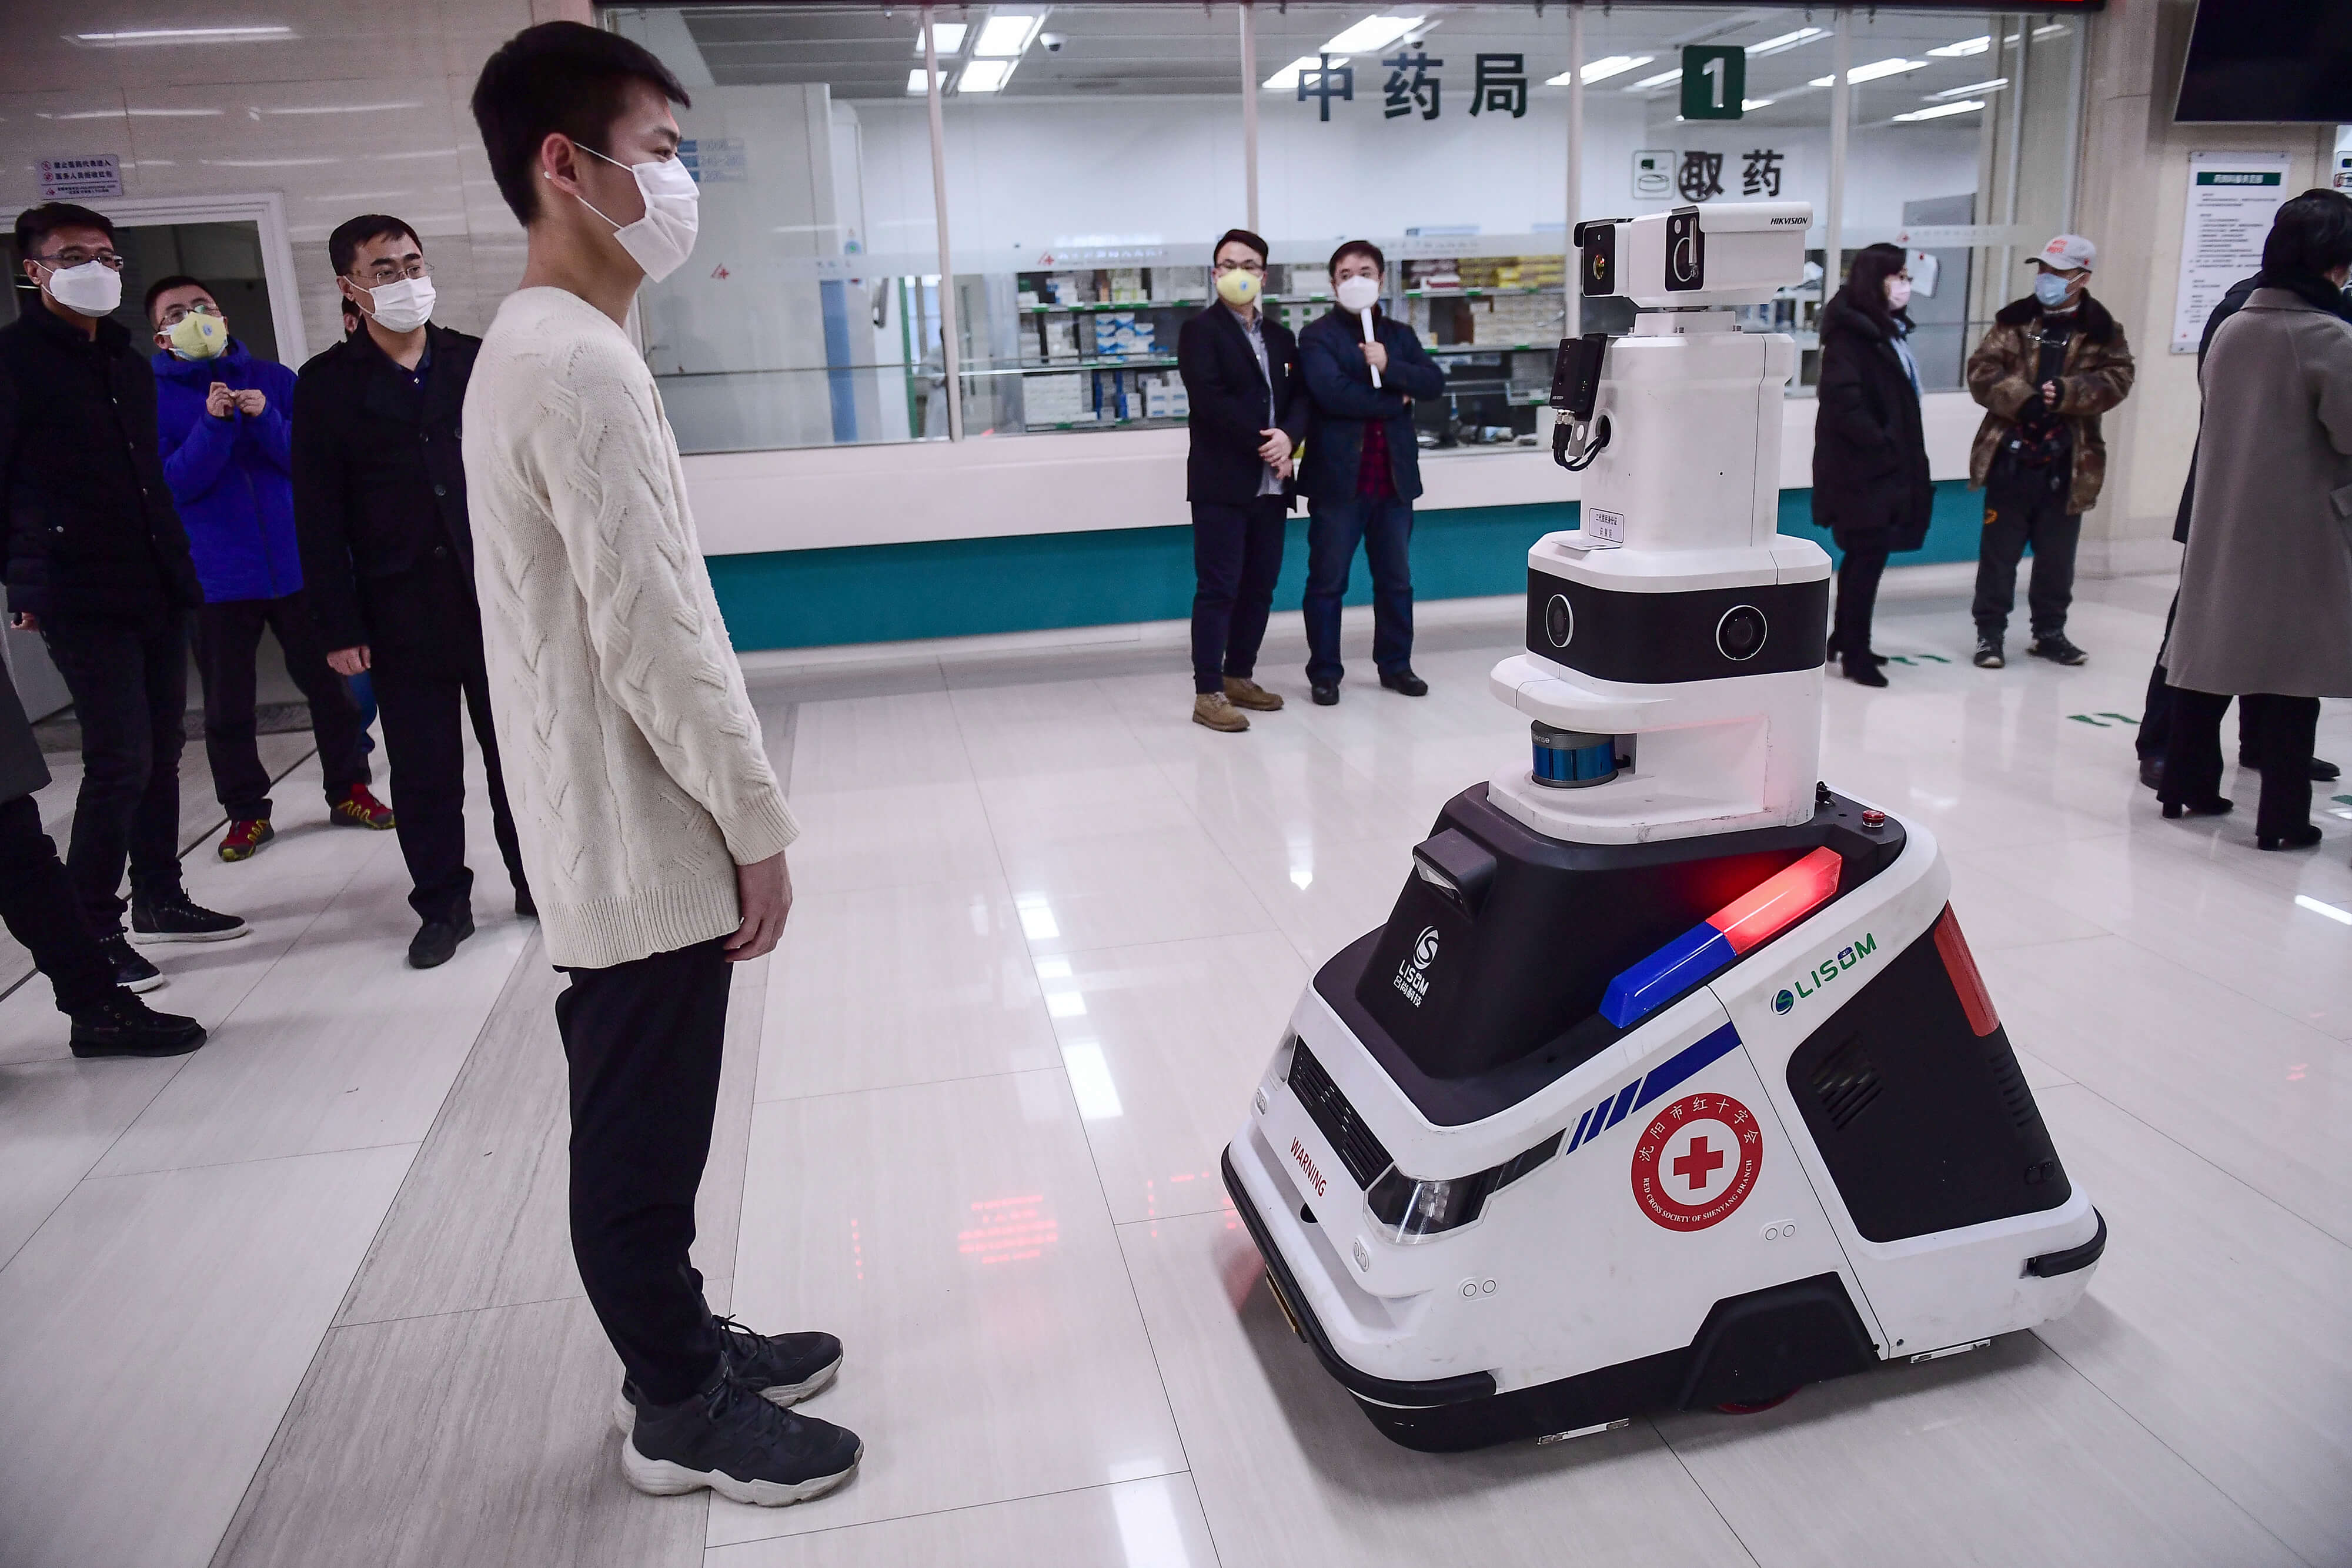 A patrol robot used to check temperatures, identities and disinfect people in Shenyang in China. The hospital uses the robot to reduce the pressure on front-line medical staff.